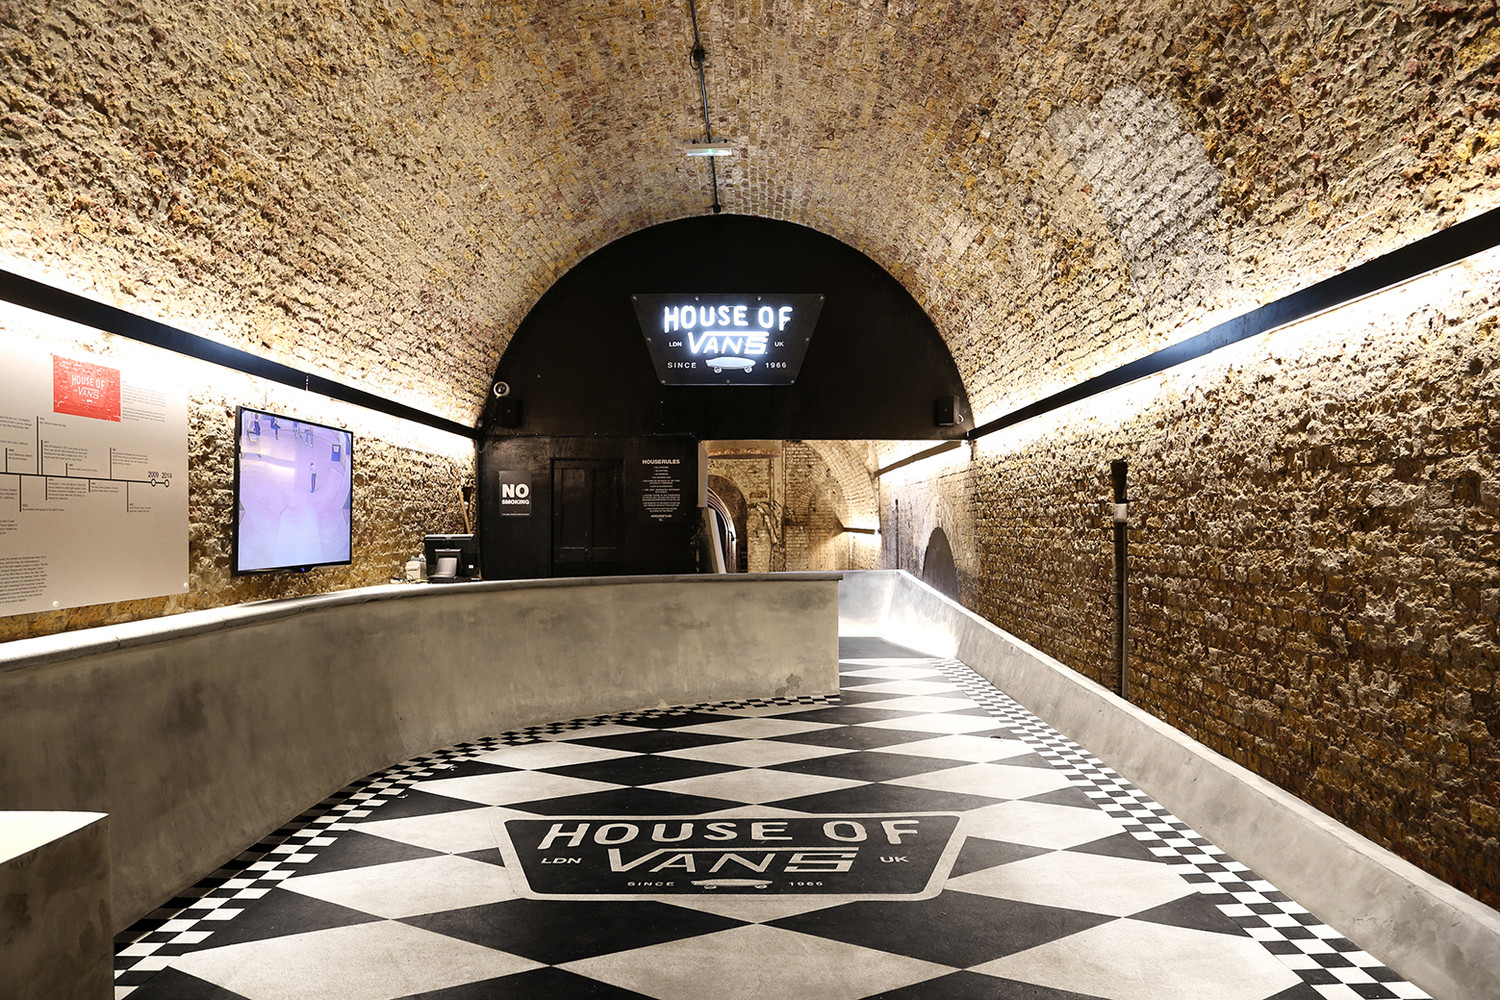 House of Vans London / Tim Greatrex